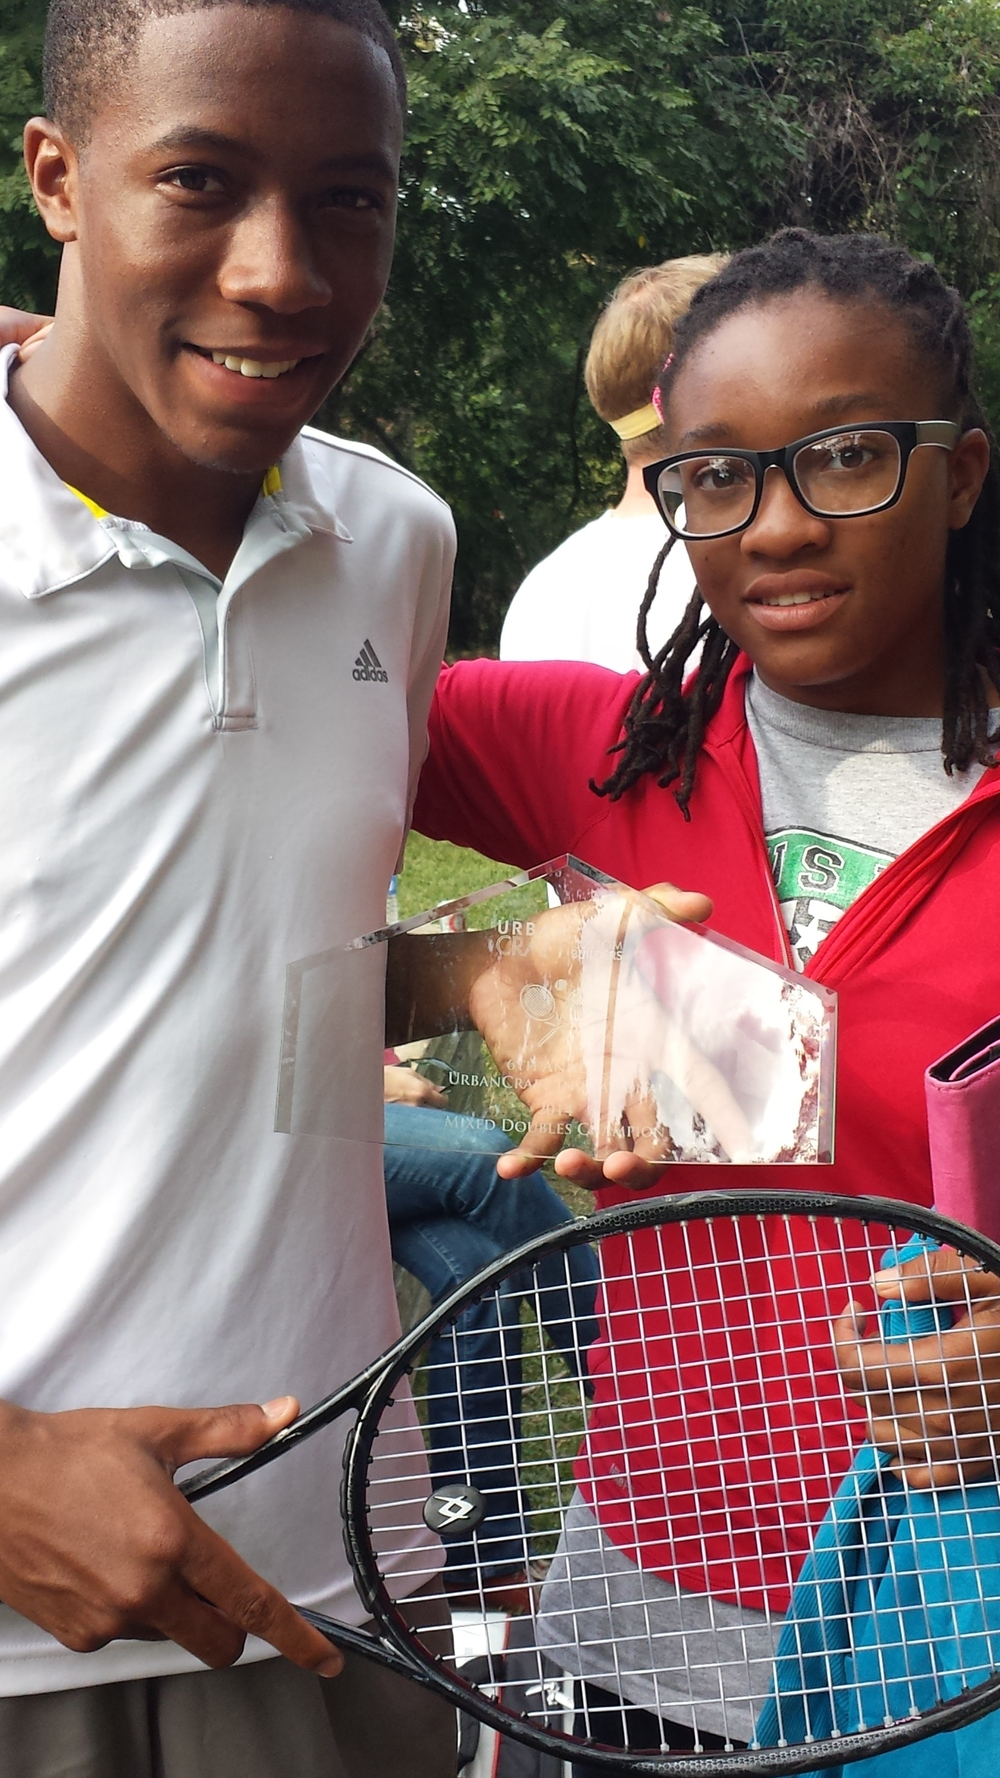 Myles Martin in photo with his sister Nia. Myles won the Doubles at the Pro/Am benefiting the Zina Garrison Foundation.